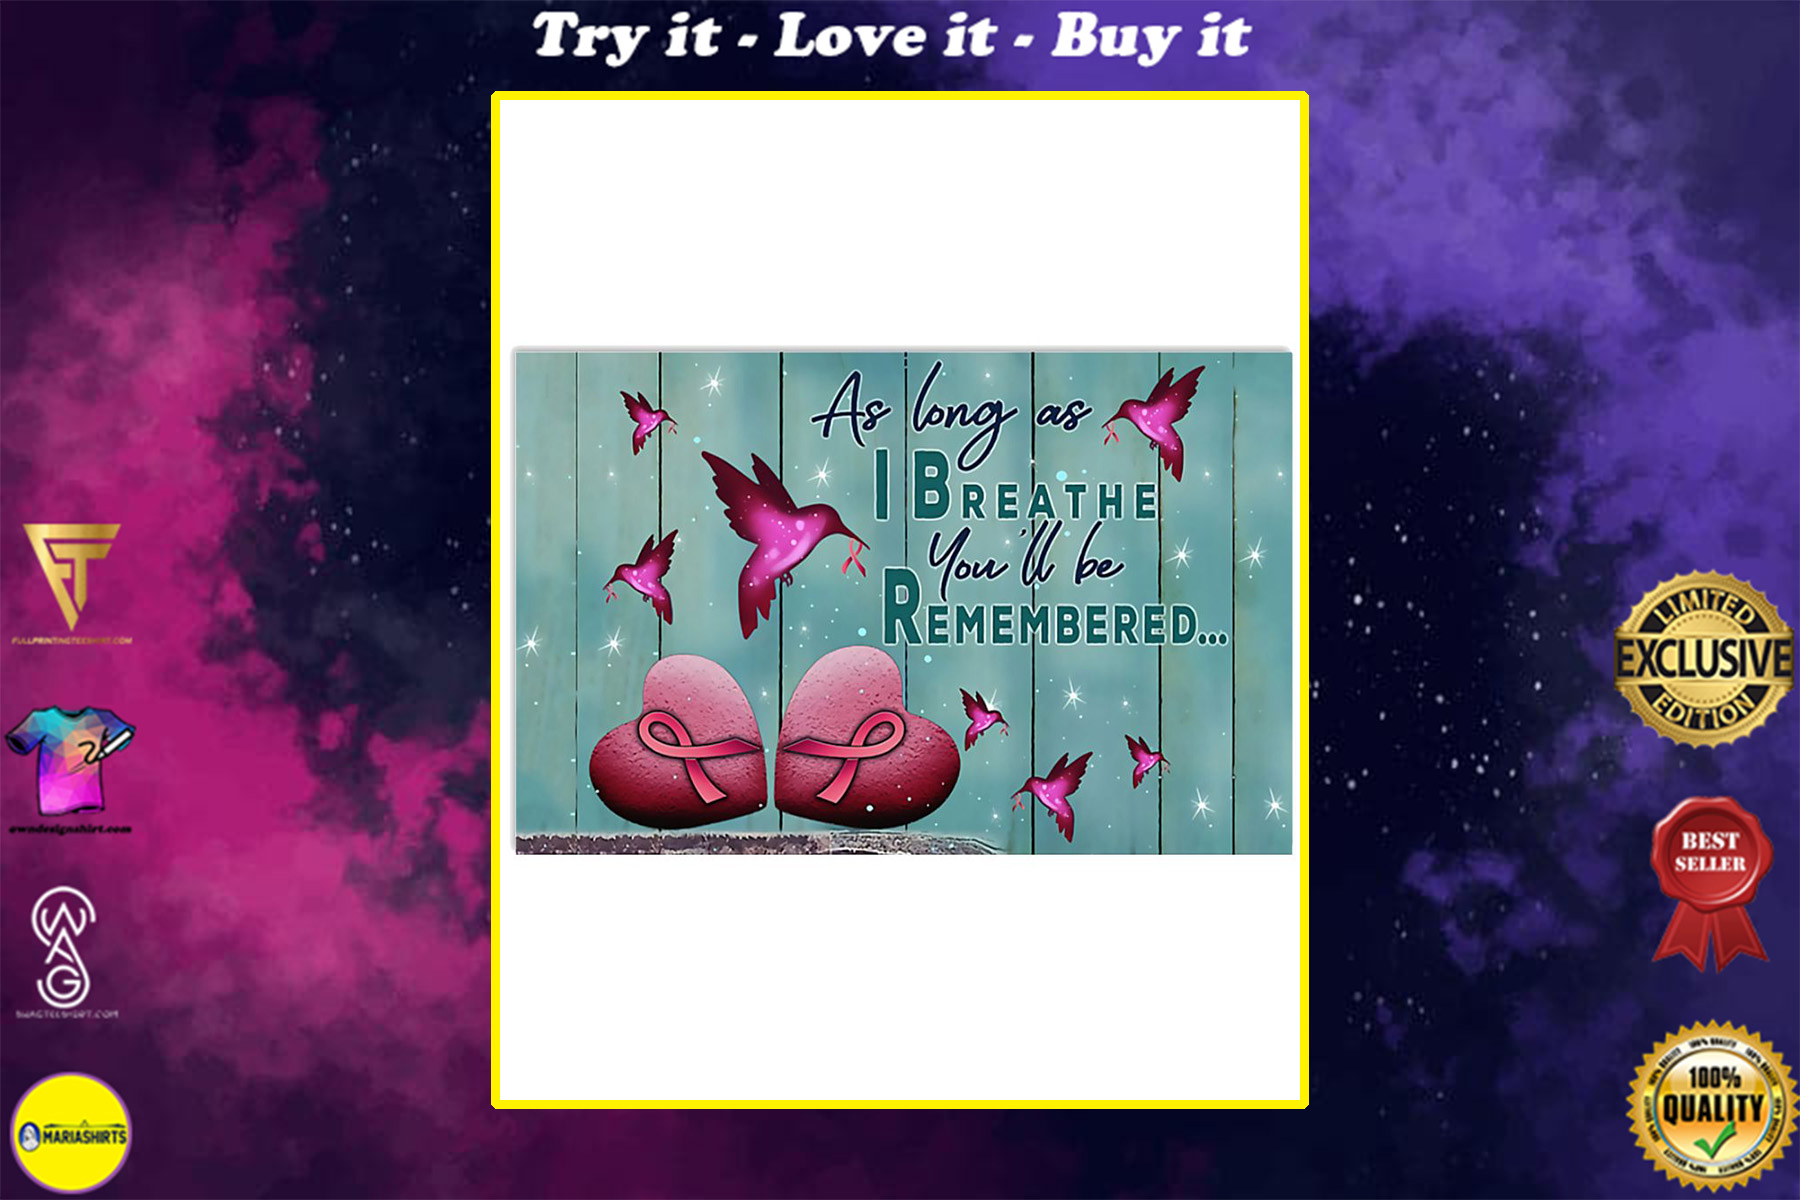 as long as i breathe you'll be remembered breast cancer poster